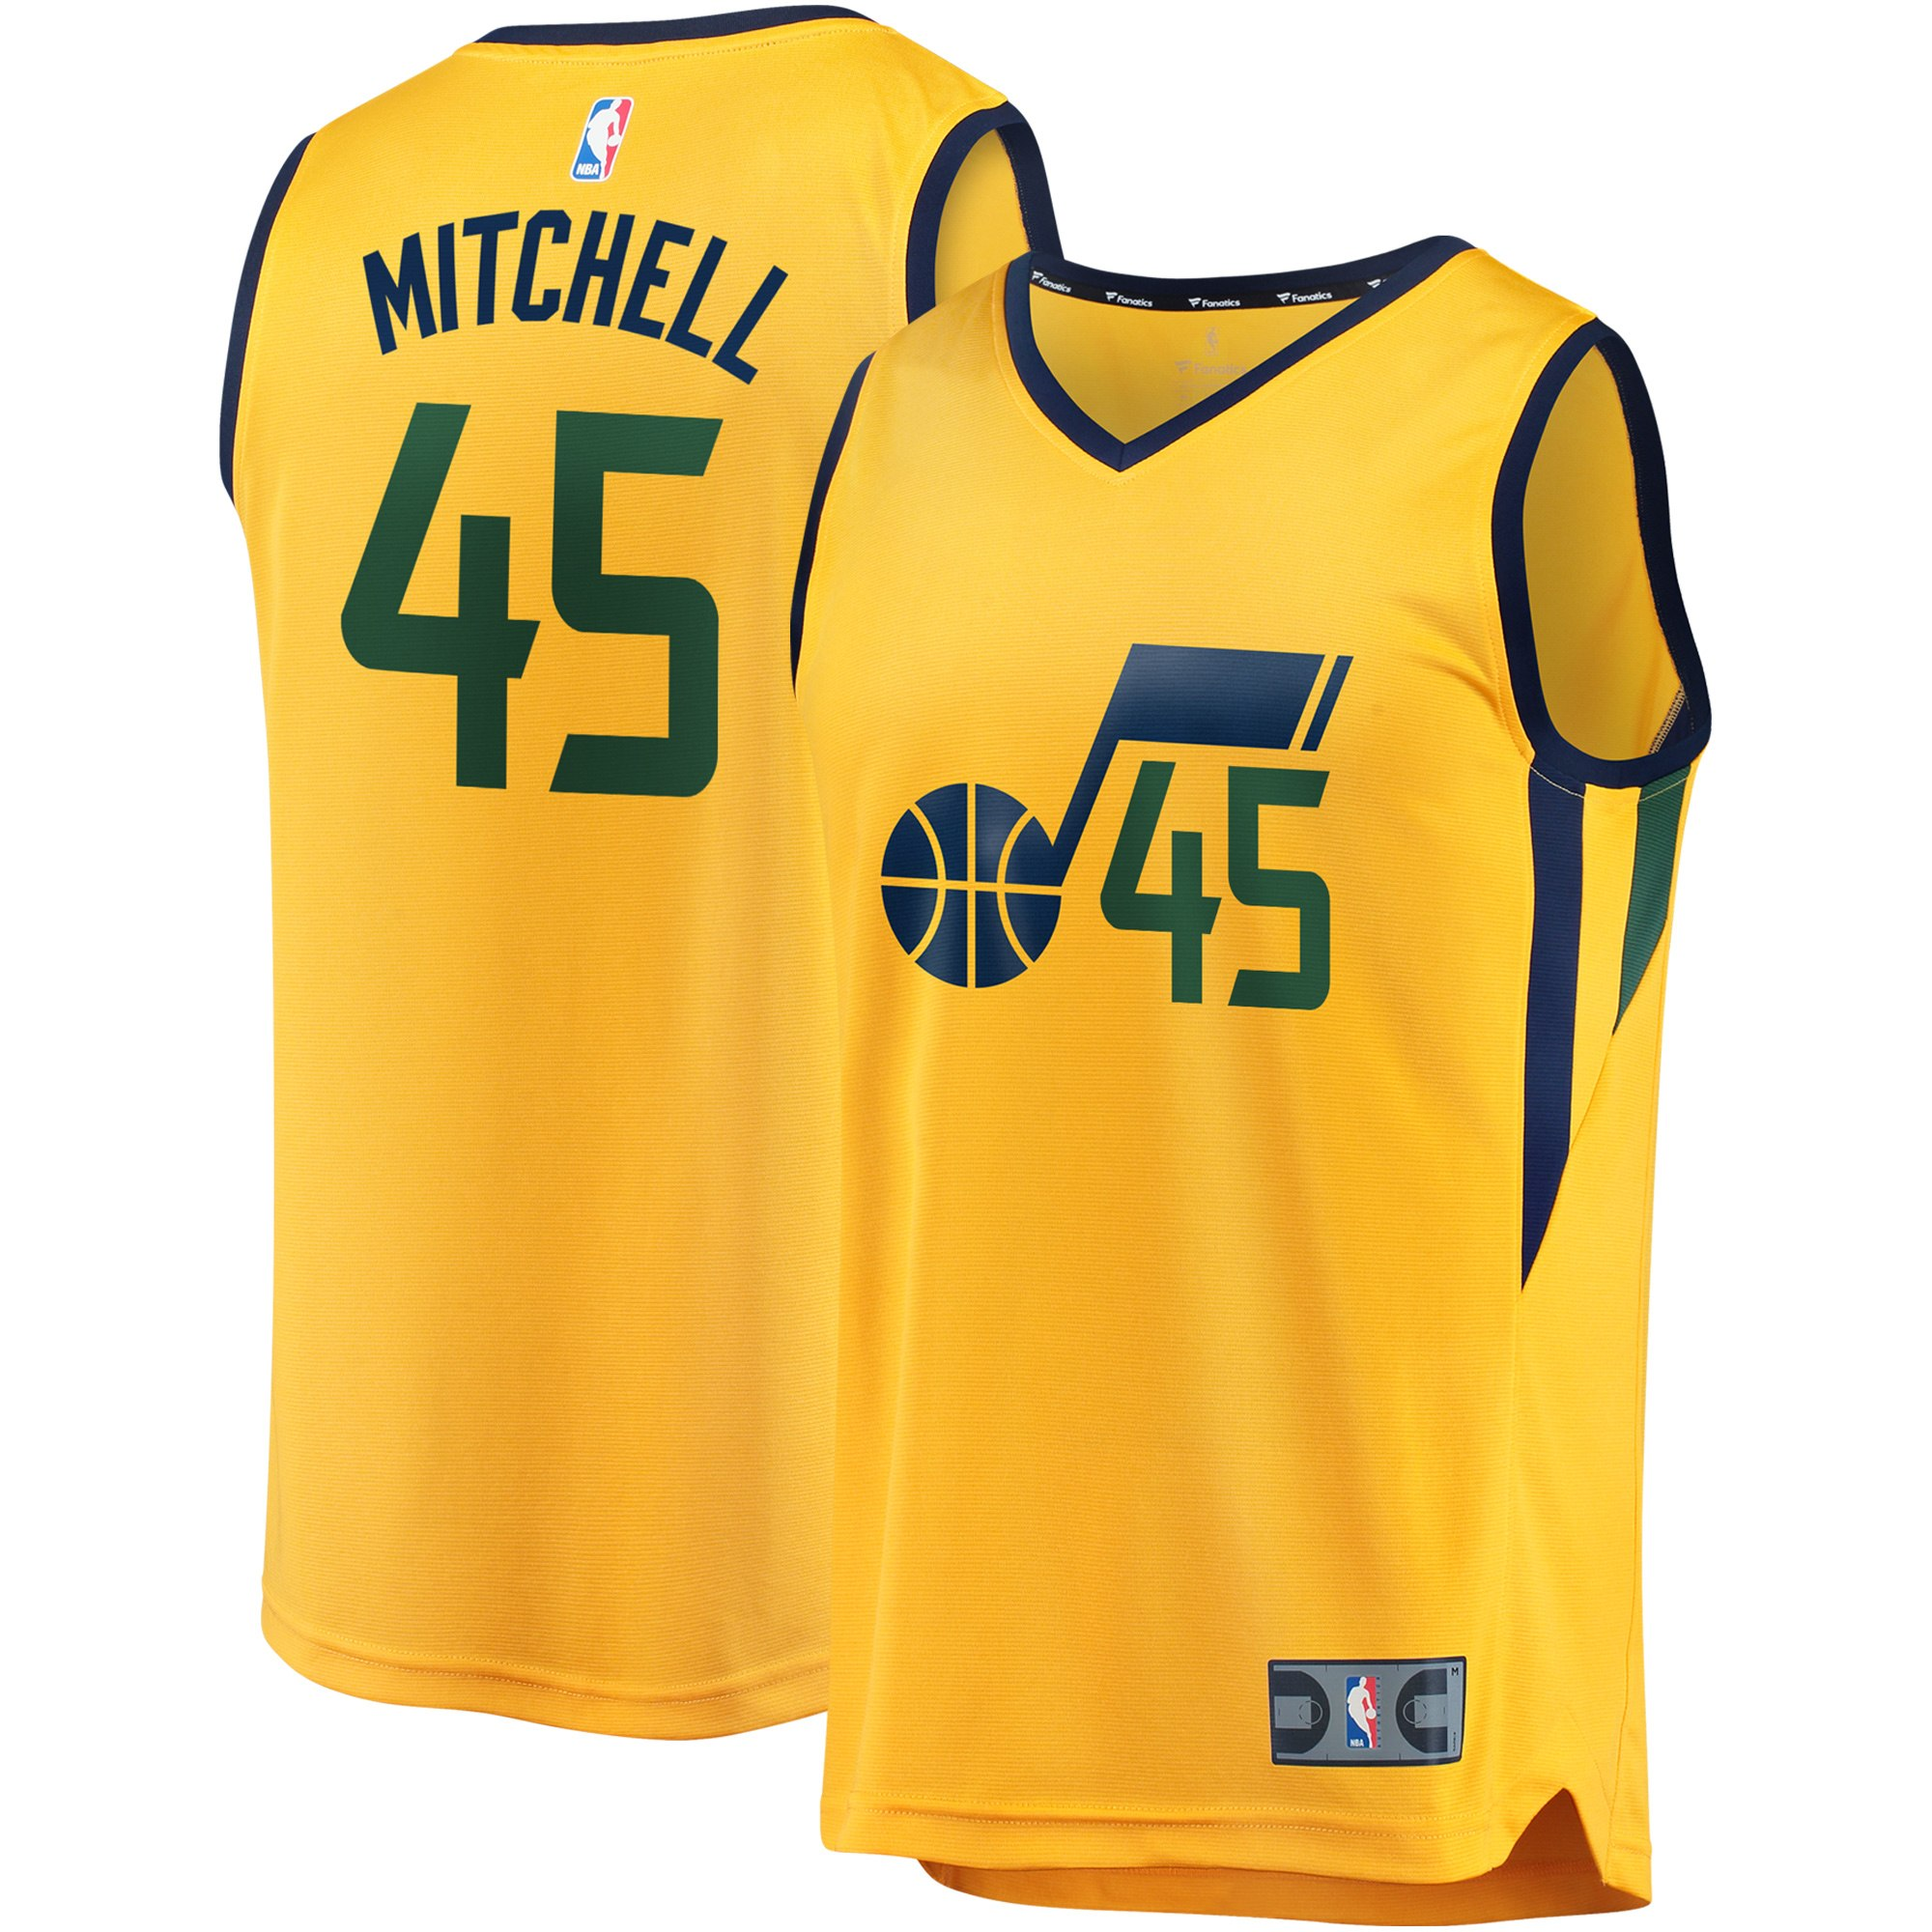 buy popular 2a5b1 be0d2 Donovan Mitchell Utah Jazz Fanatics Branded Youth Fast Break Jersey -  Statement Edition - Gold